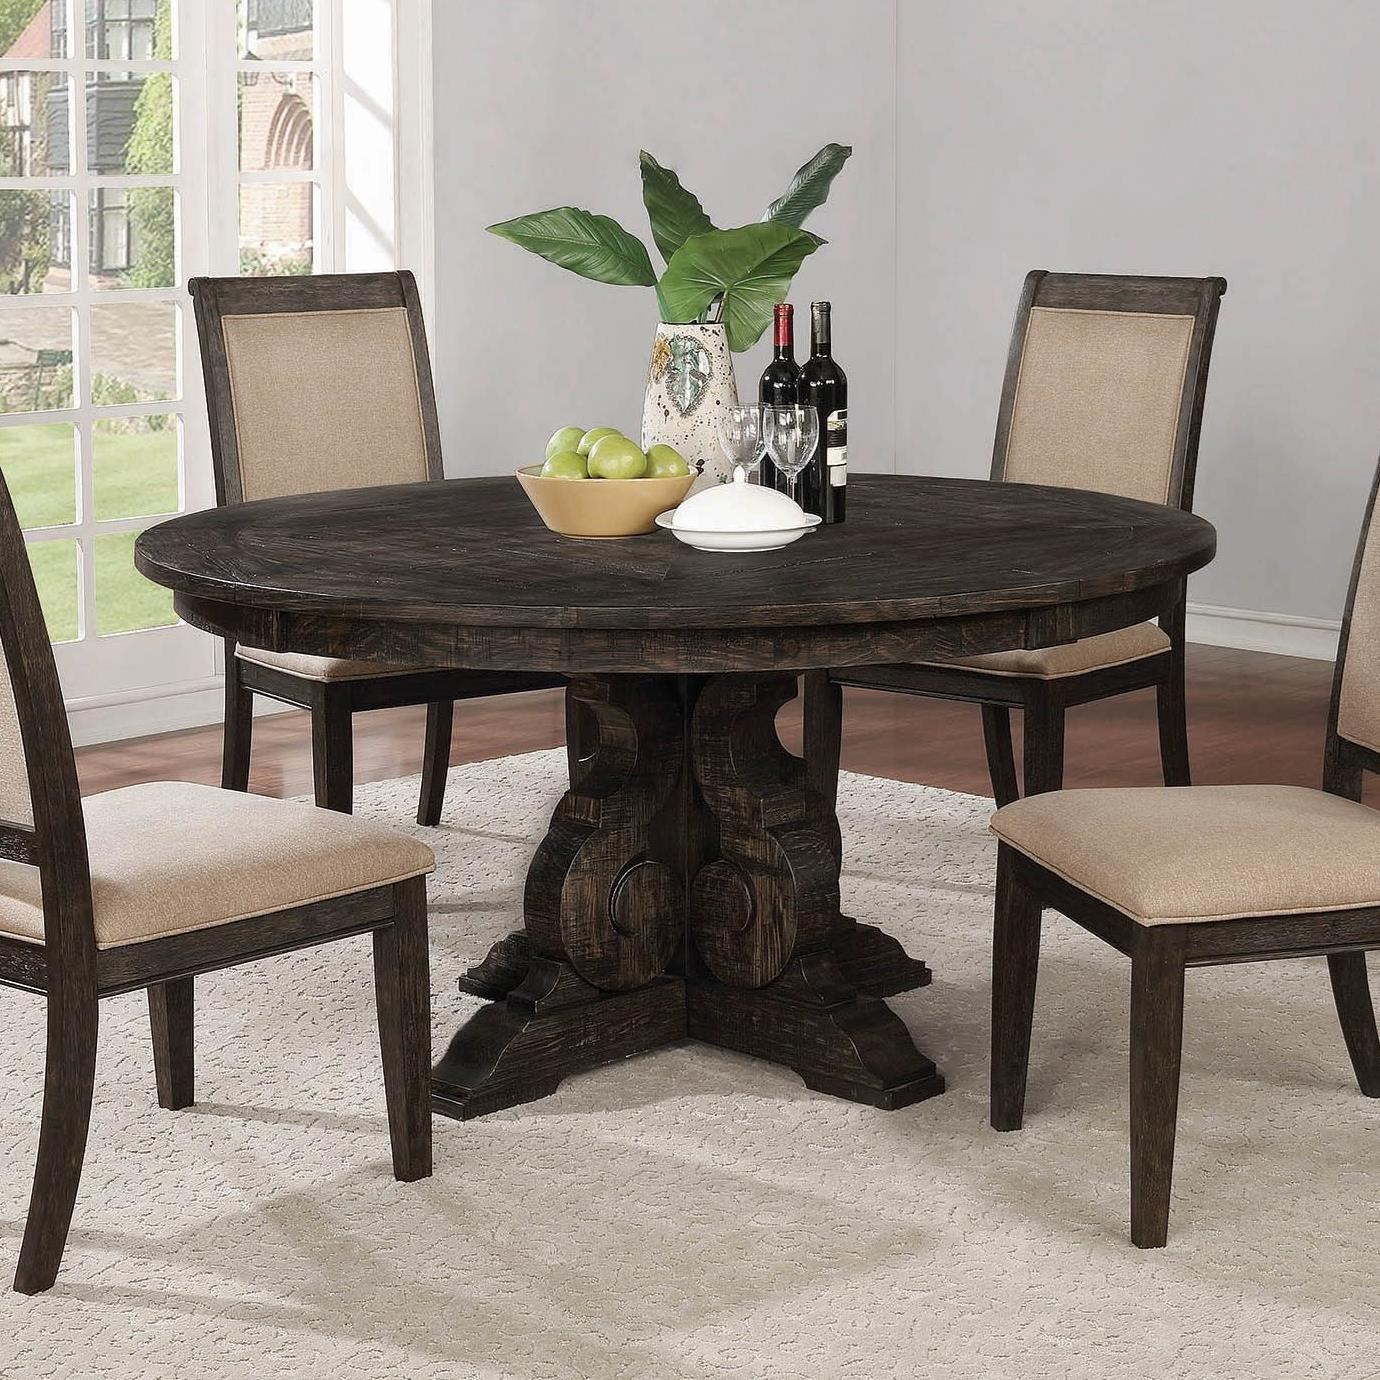 Coaster 101032 Tabitha Traditional Dining Side Chair: Fine Furniture Whitney 121280 Traditional Round Dining